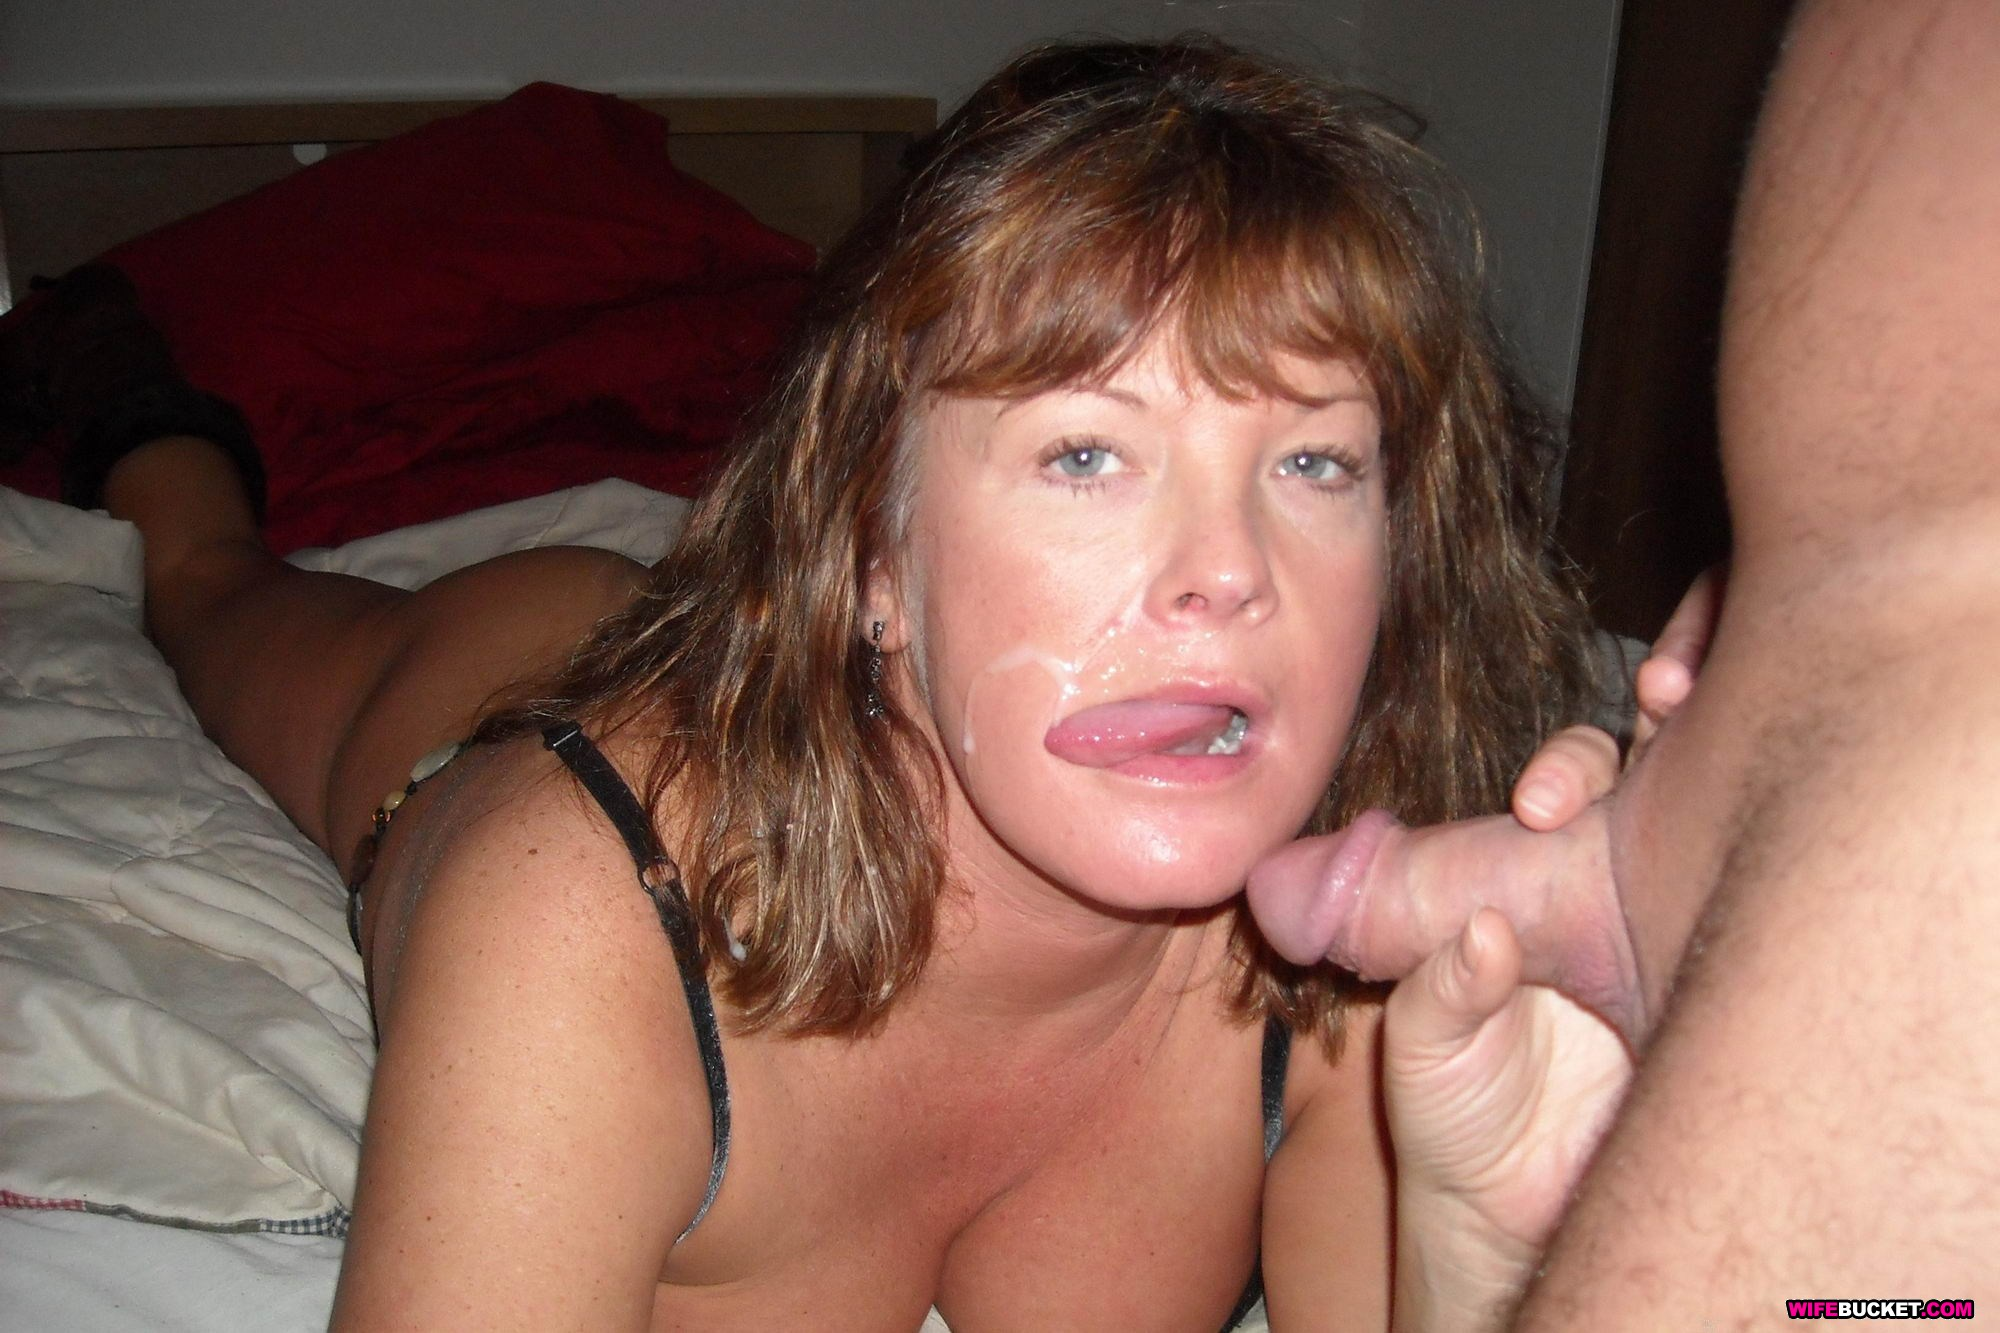 Mature mom brook playing with her shaved vagina on hd camera 1